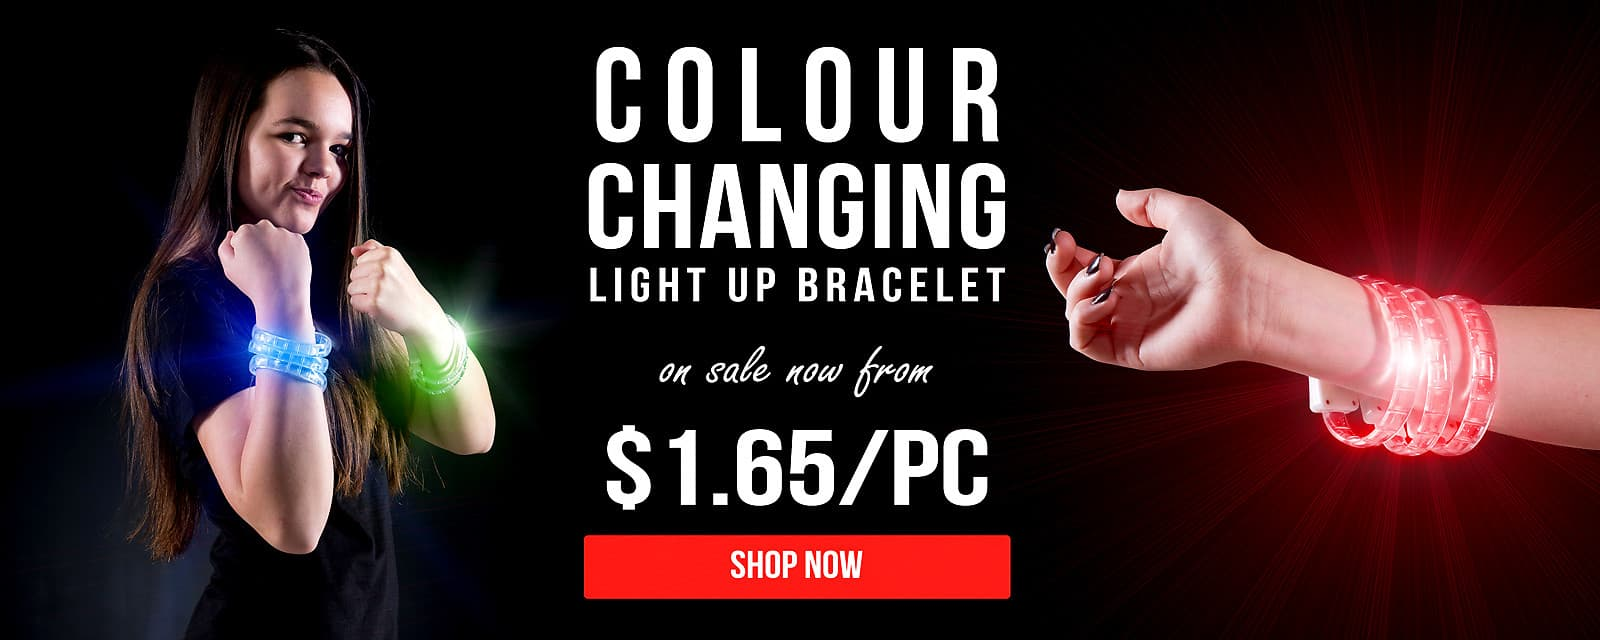 Colour Changing Light Up Bracelet On Sale Feb 2020